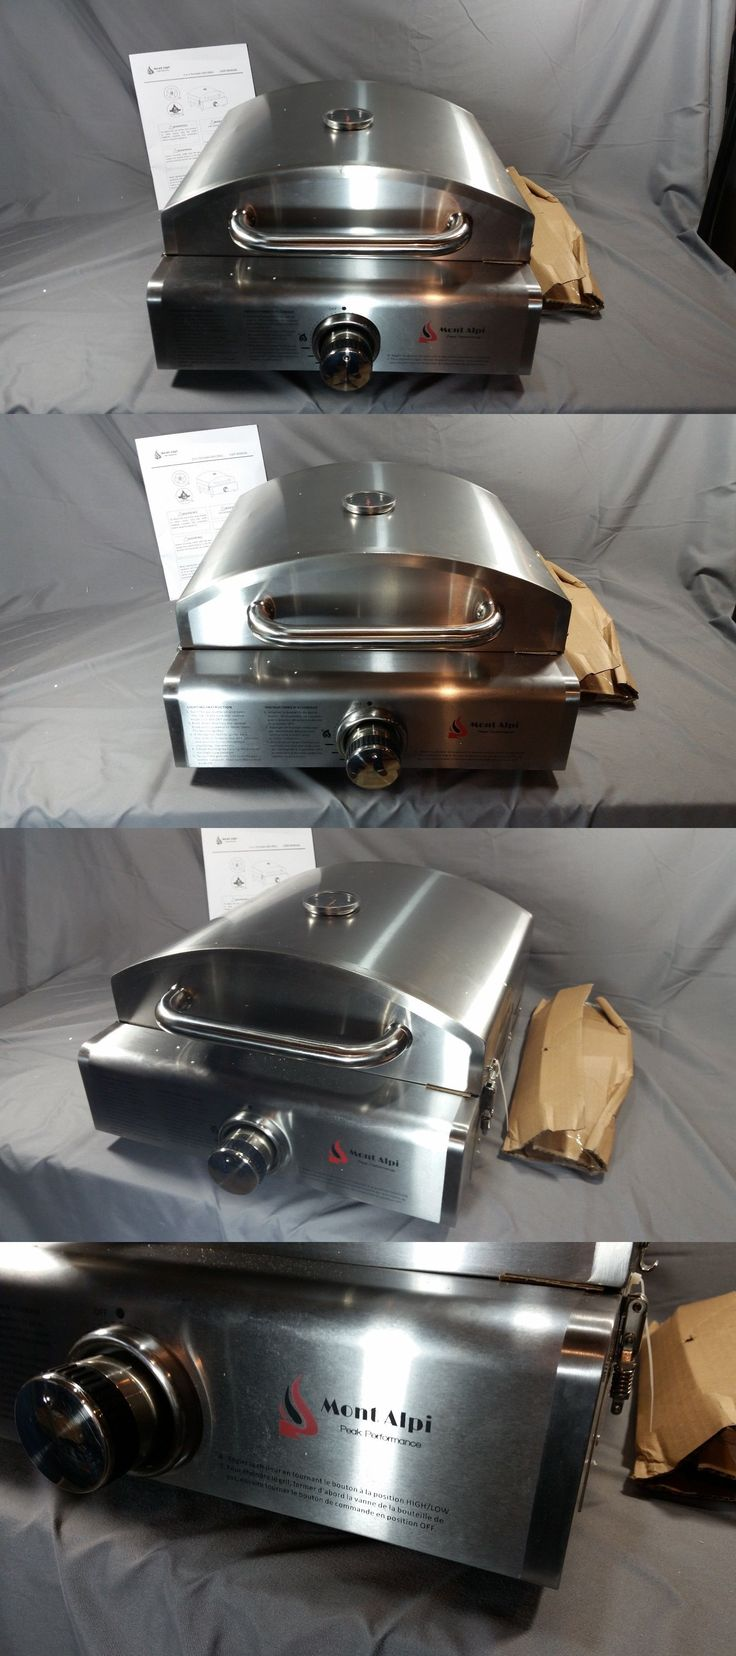 Camping Ovens 181387: Mont Alpi Portable Propane Pizza Oven Grill Magr - New, No Box W/ Cosmetic Marks -> BUY IT NOW ONLY: $140 on eBay!